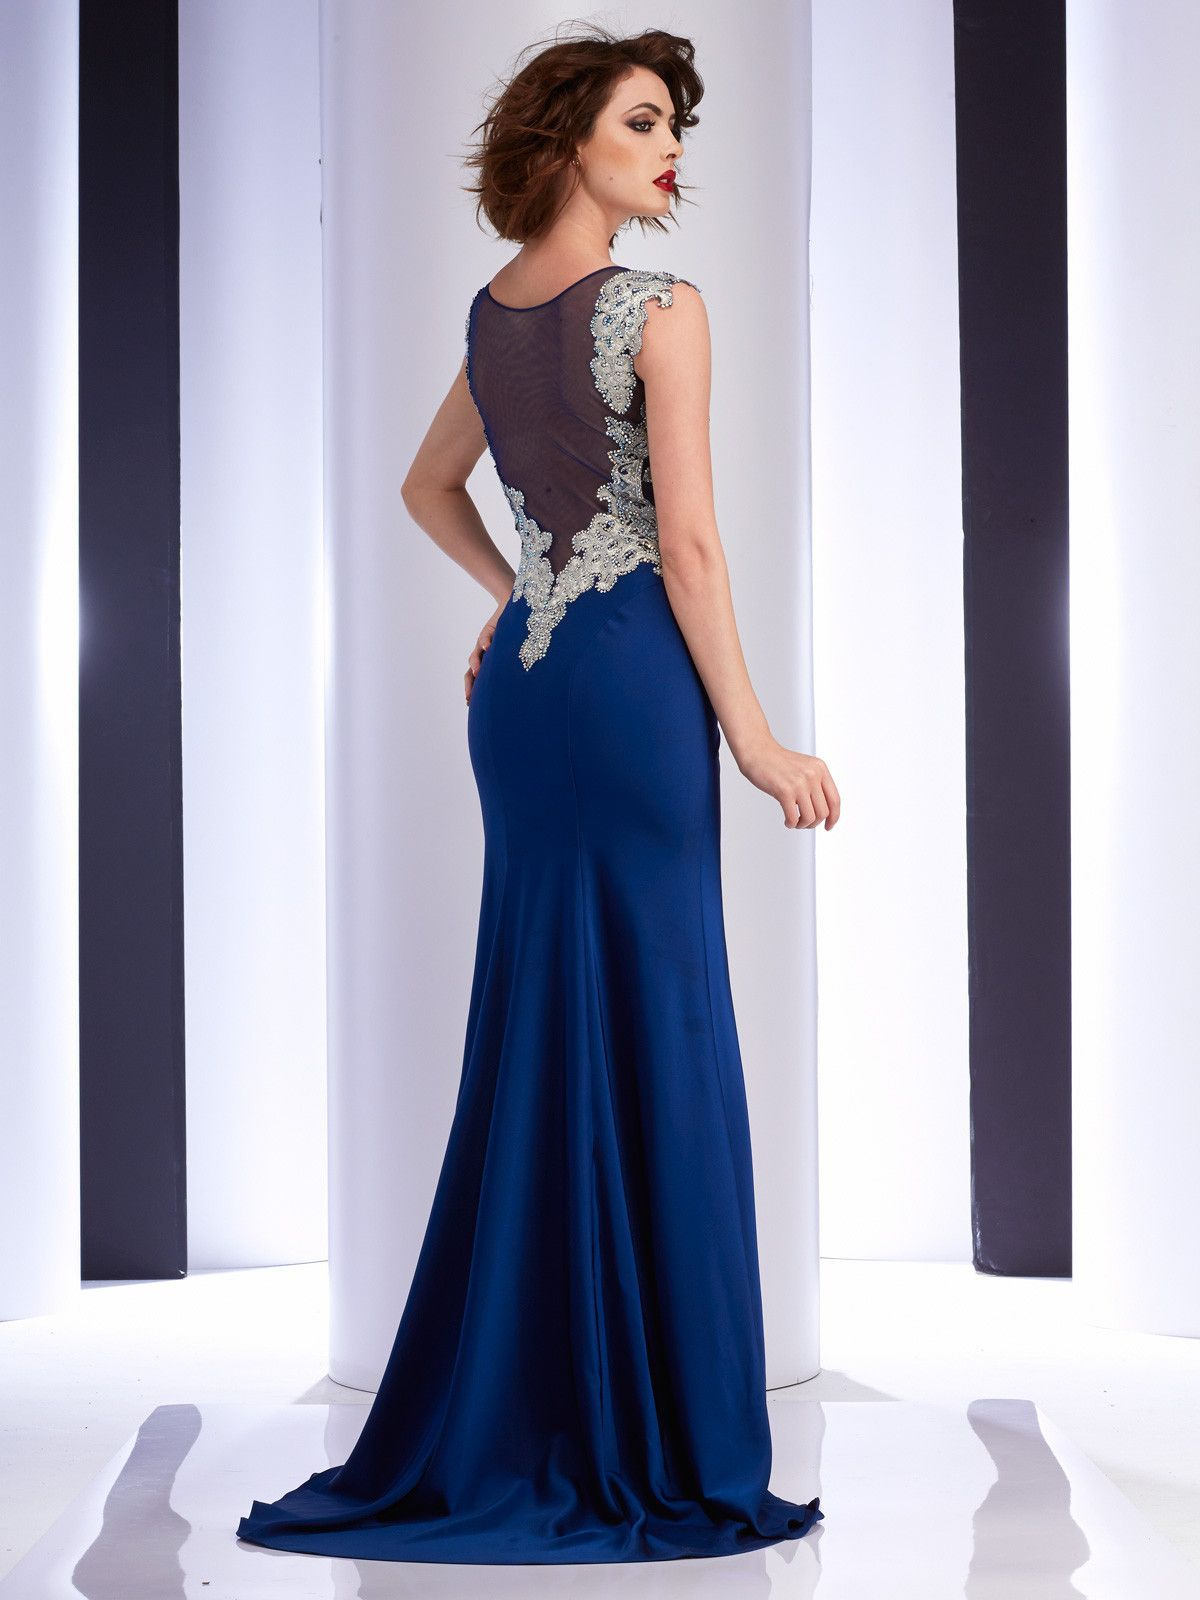 Clarisse navy dresses pinterest prom navy and prom stores